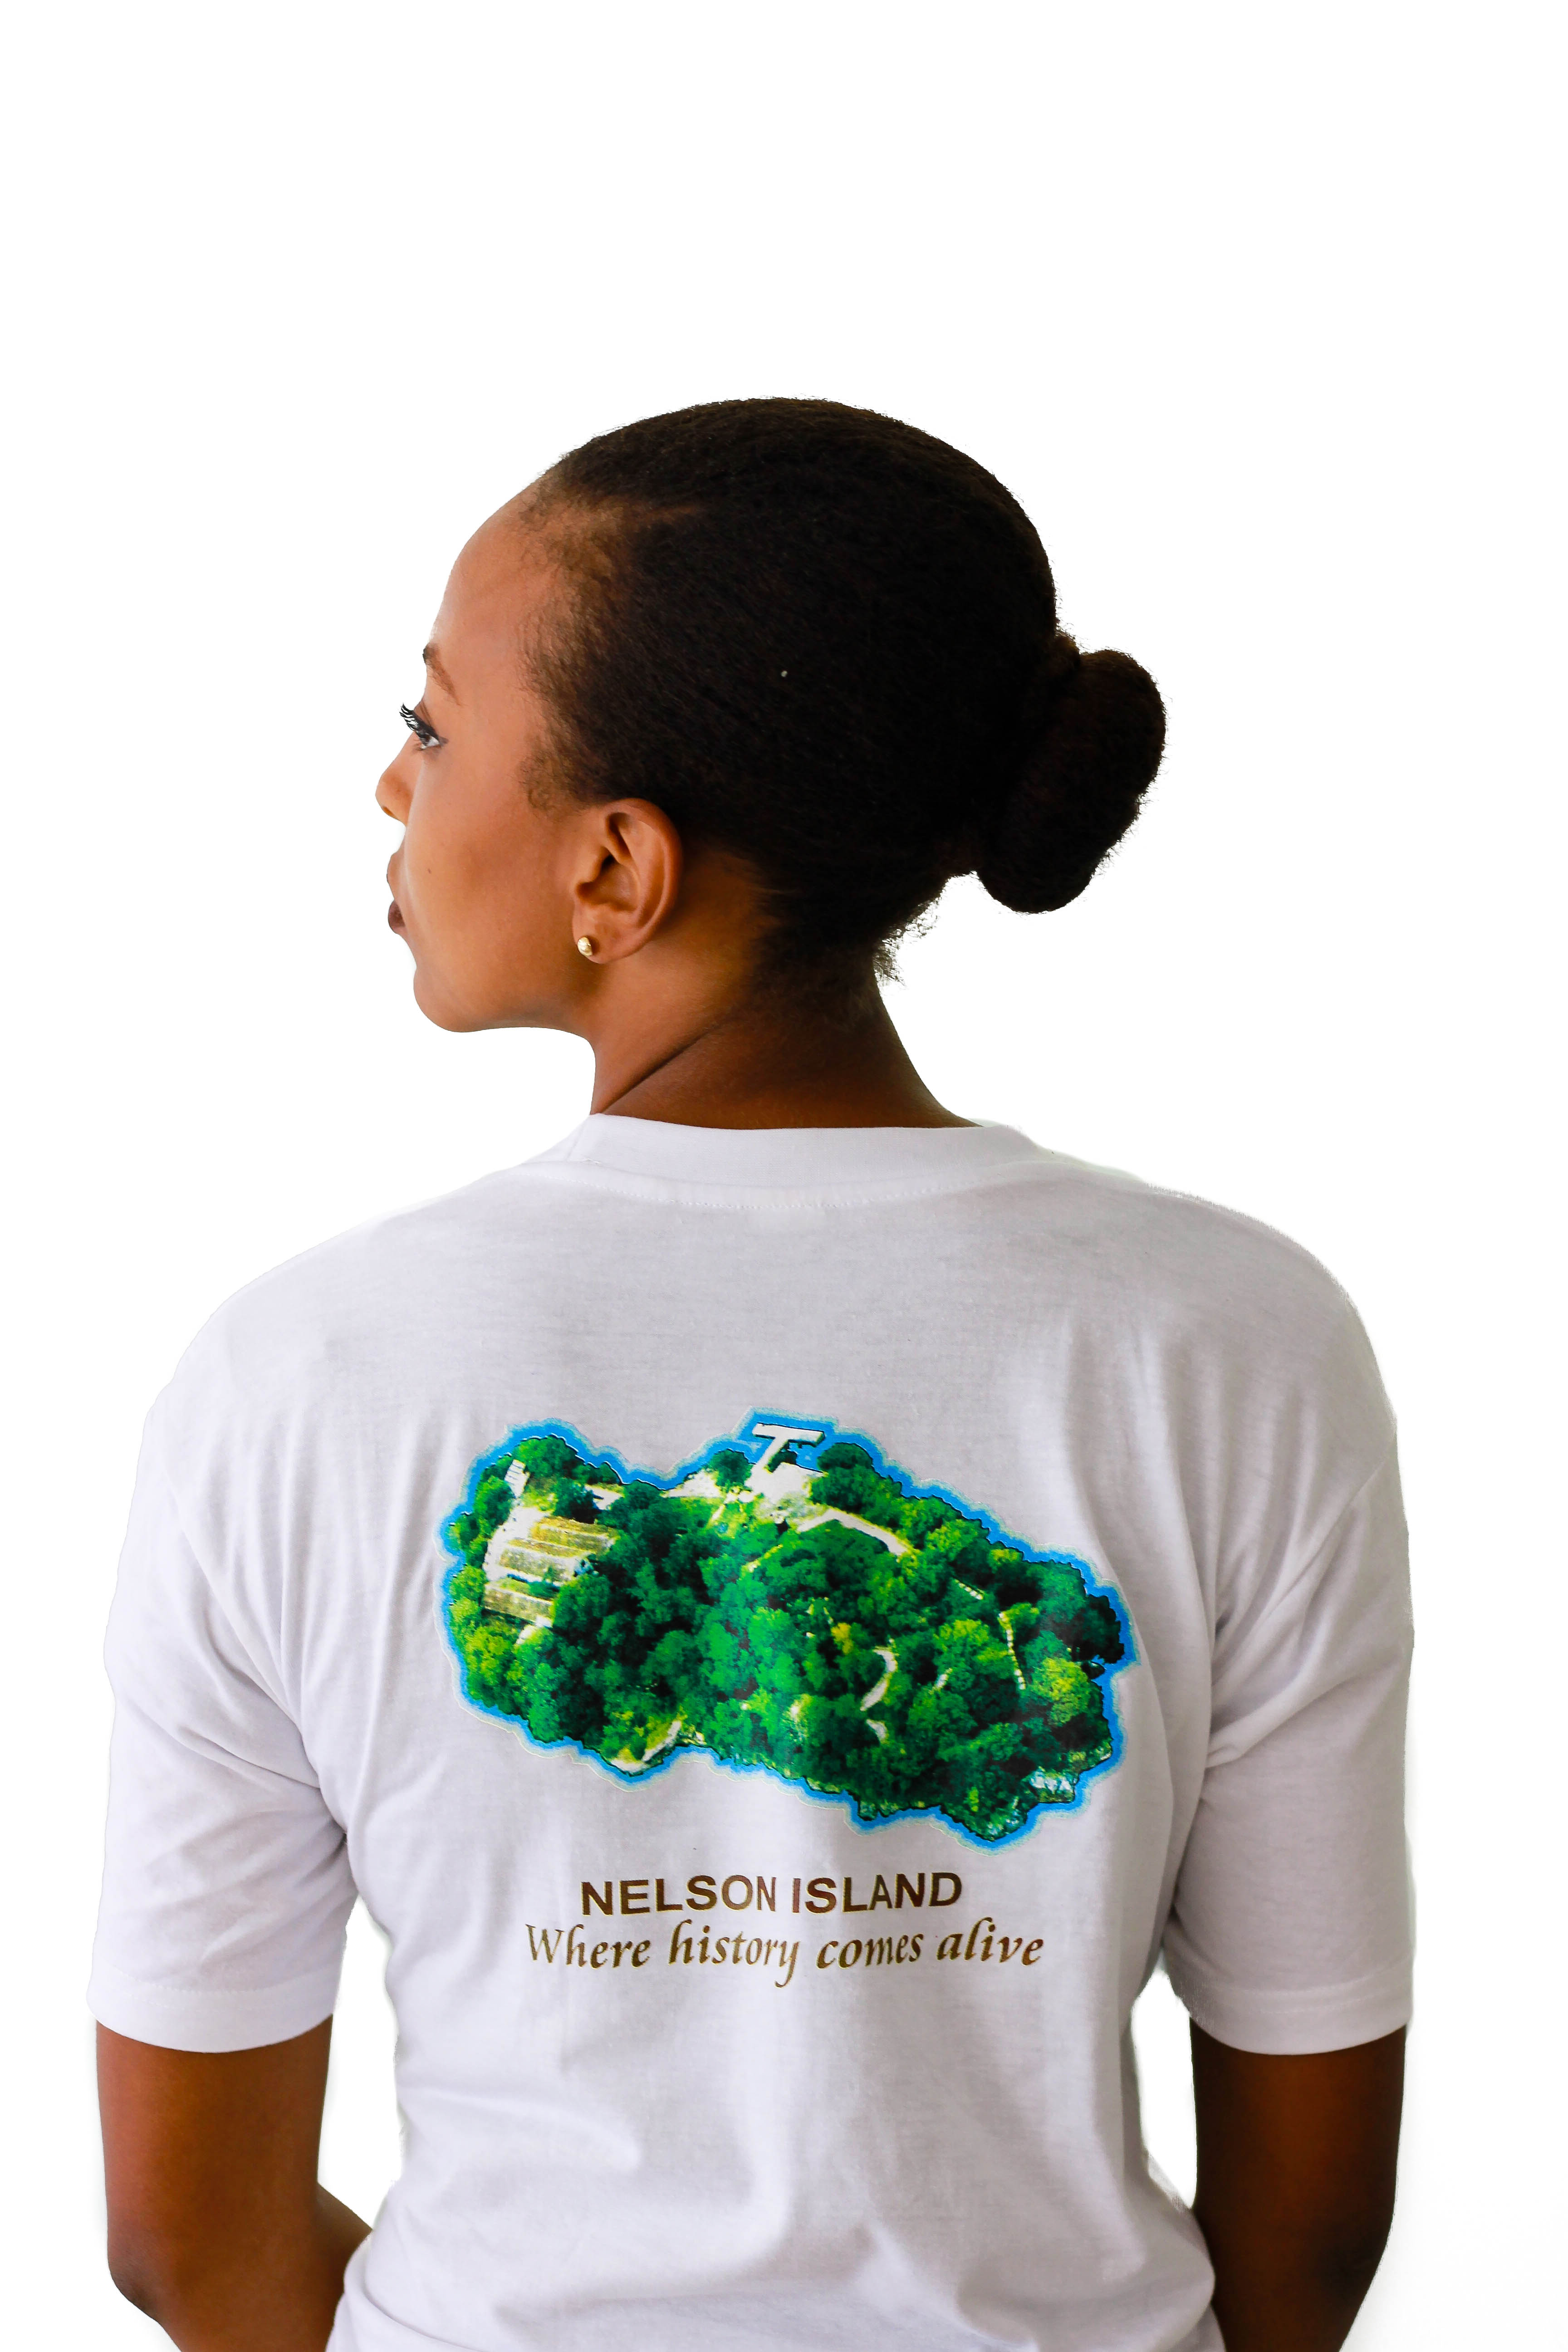 Nelson Island T Shirt – Where history comes alive